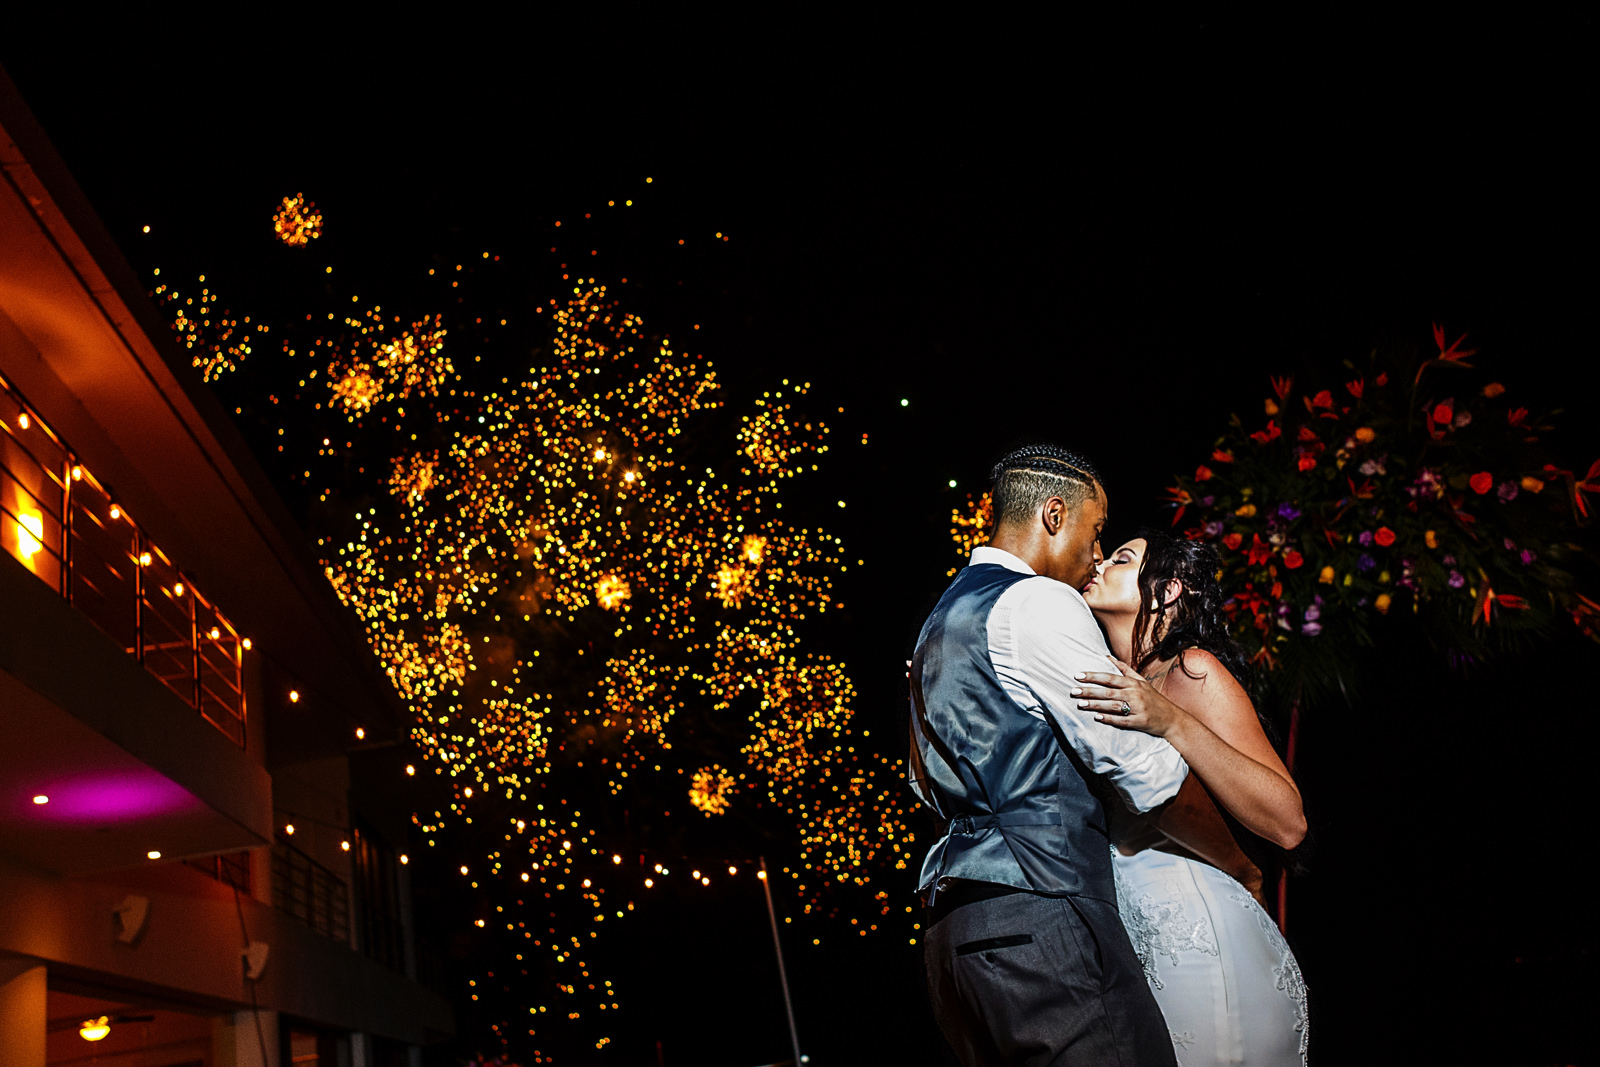 Fireworks explode in the background as the bride and groom kiss at the ned of their first dance.